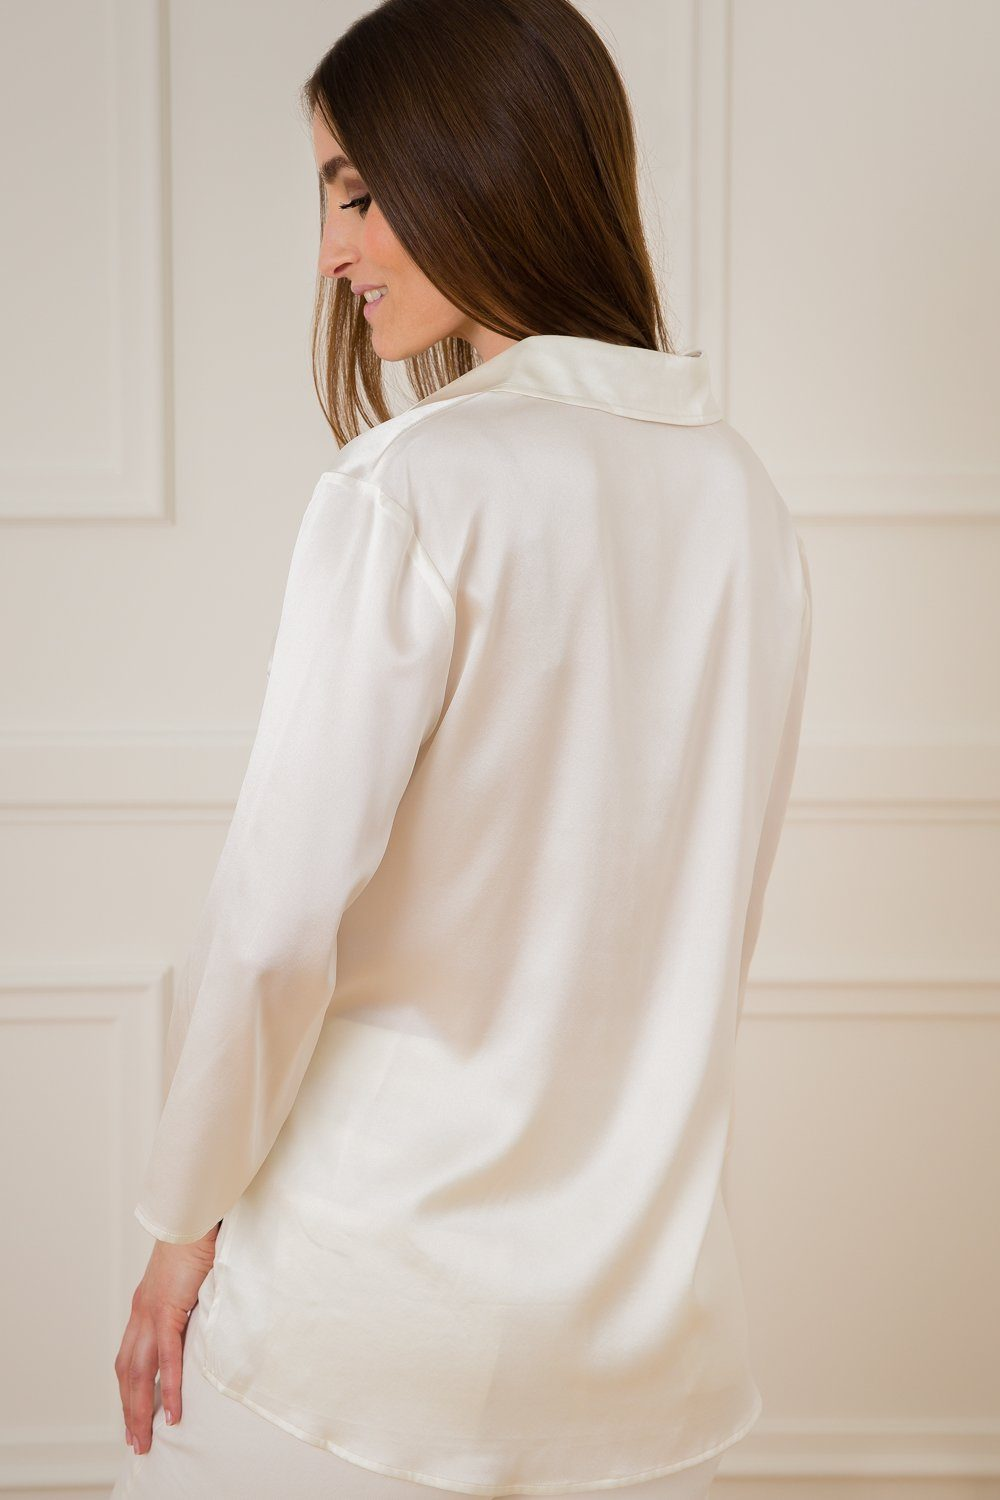 Karen Silk Shirt - Off White